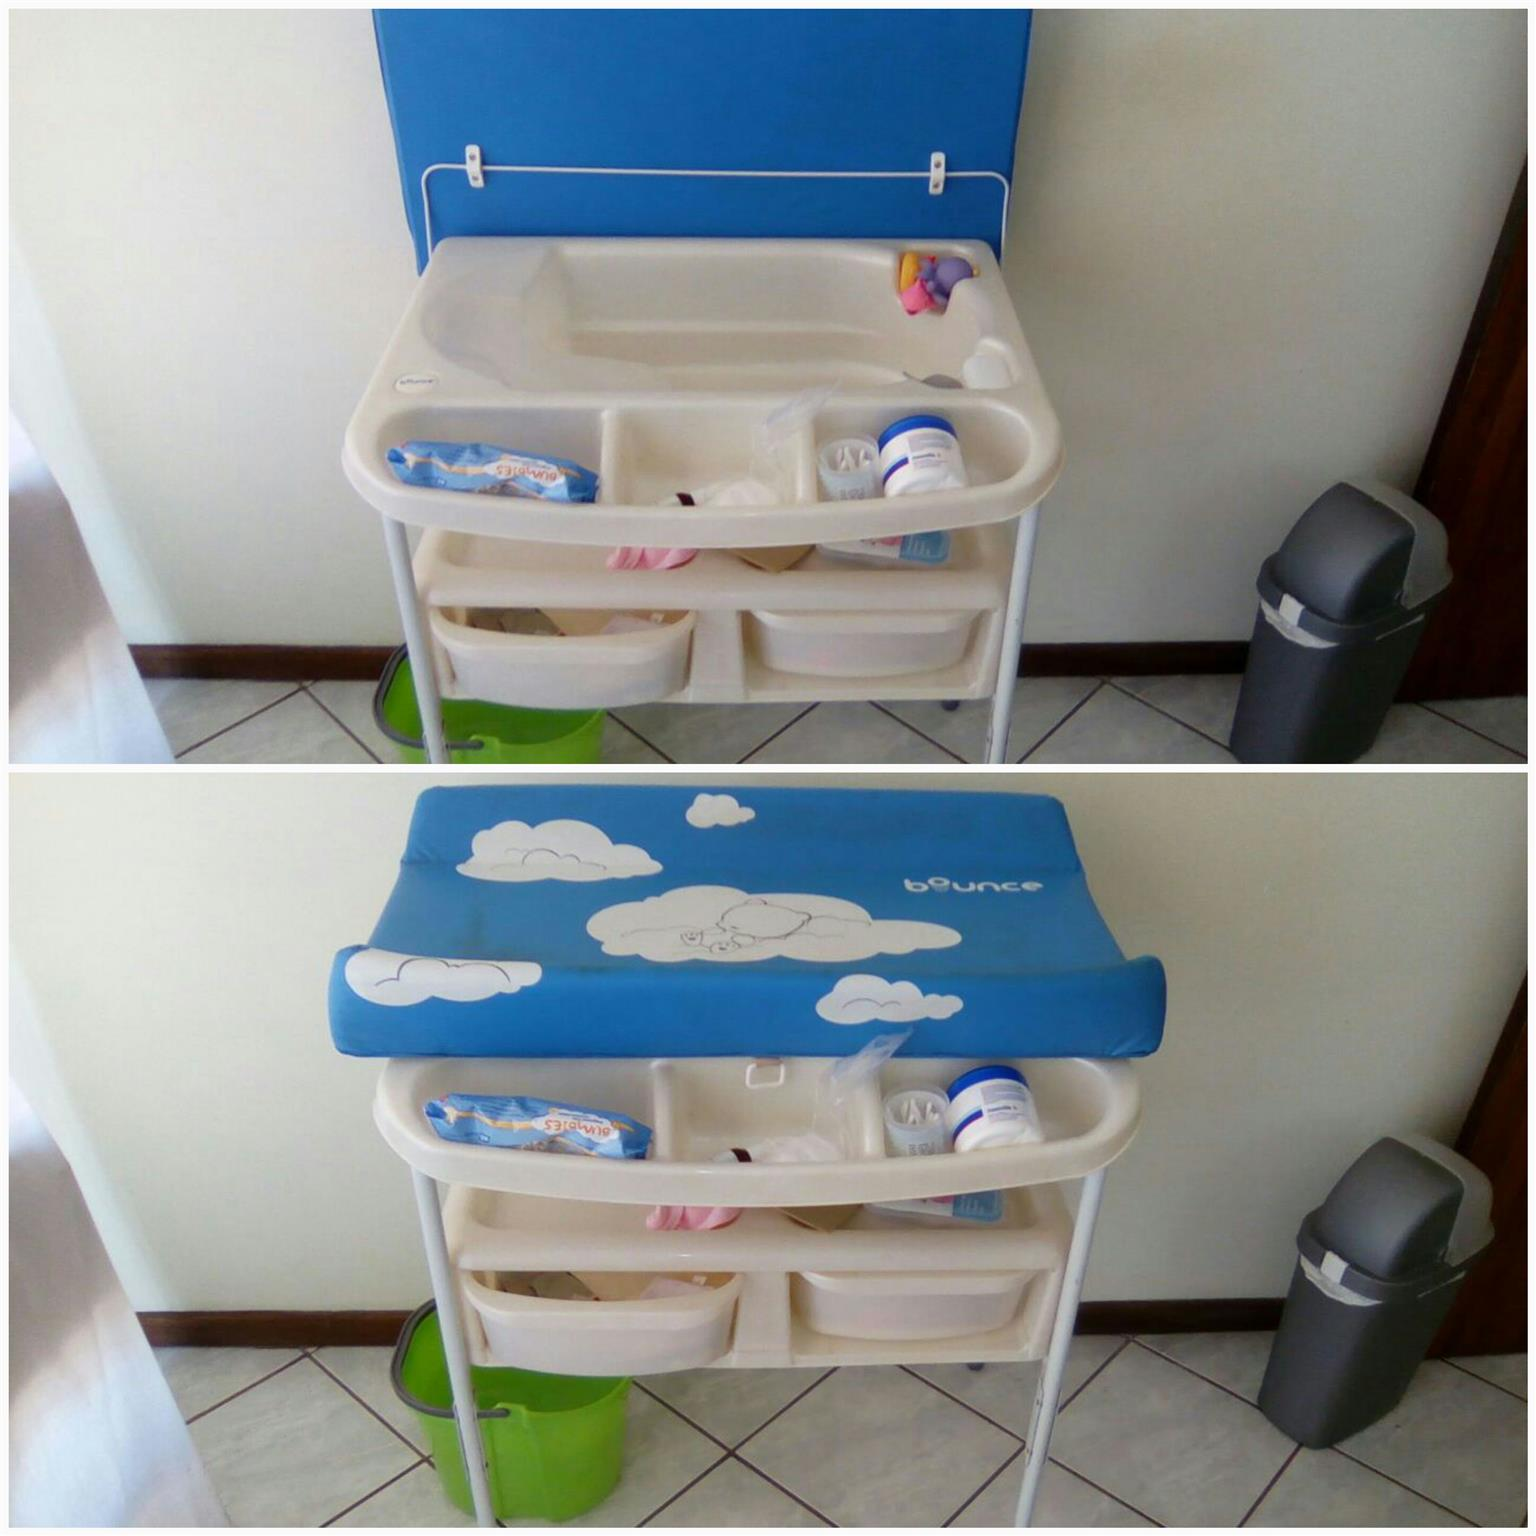 Baby bath and changing station | Junk Mail